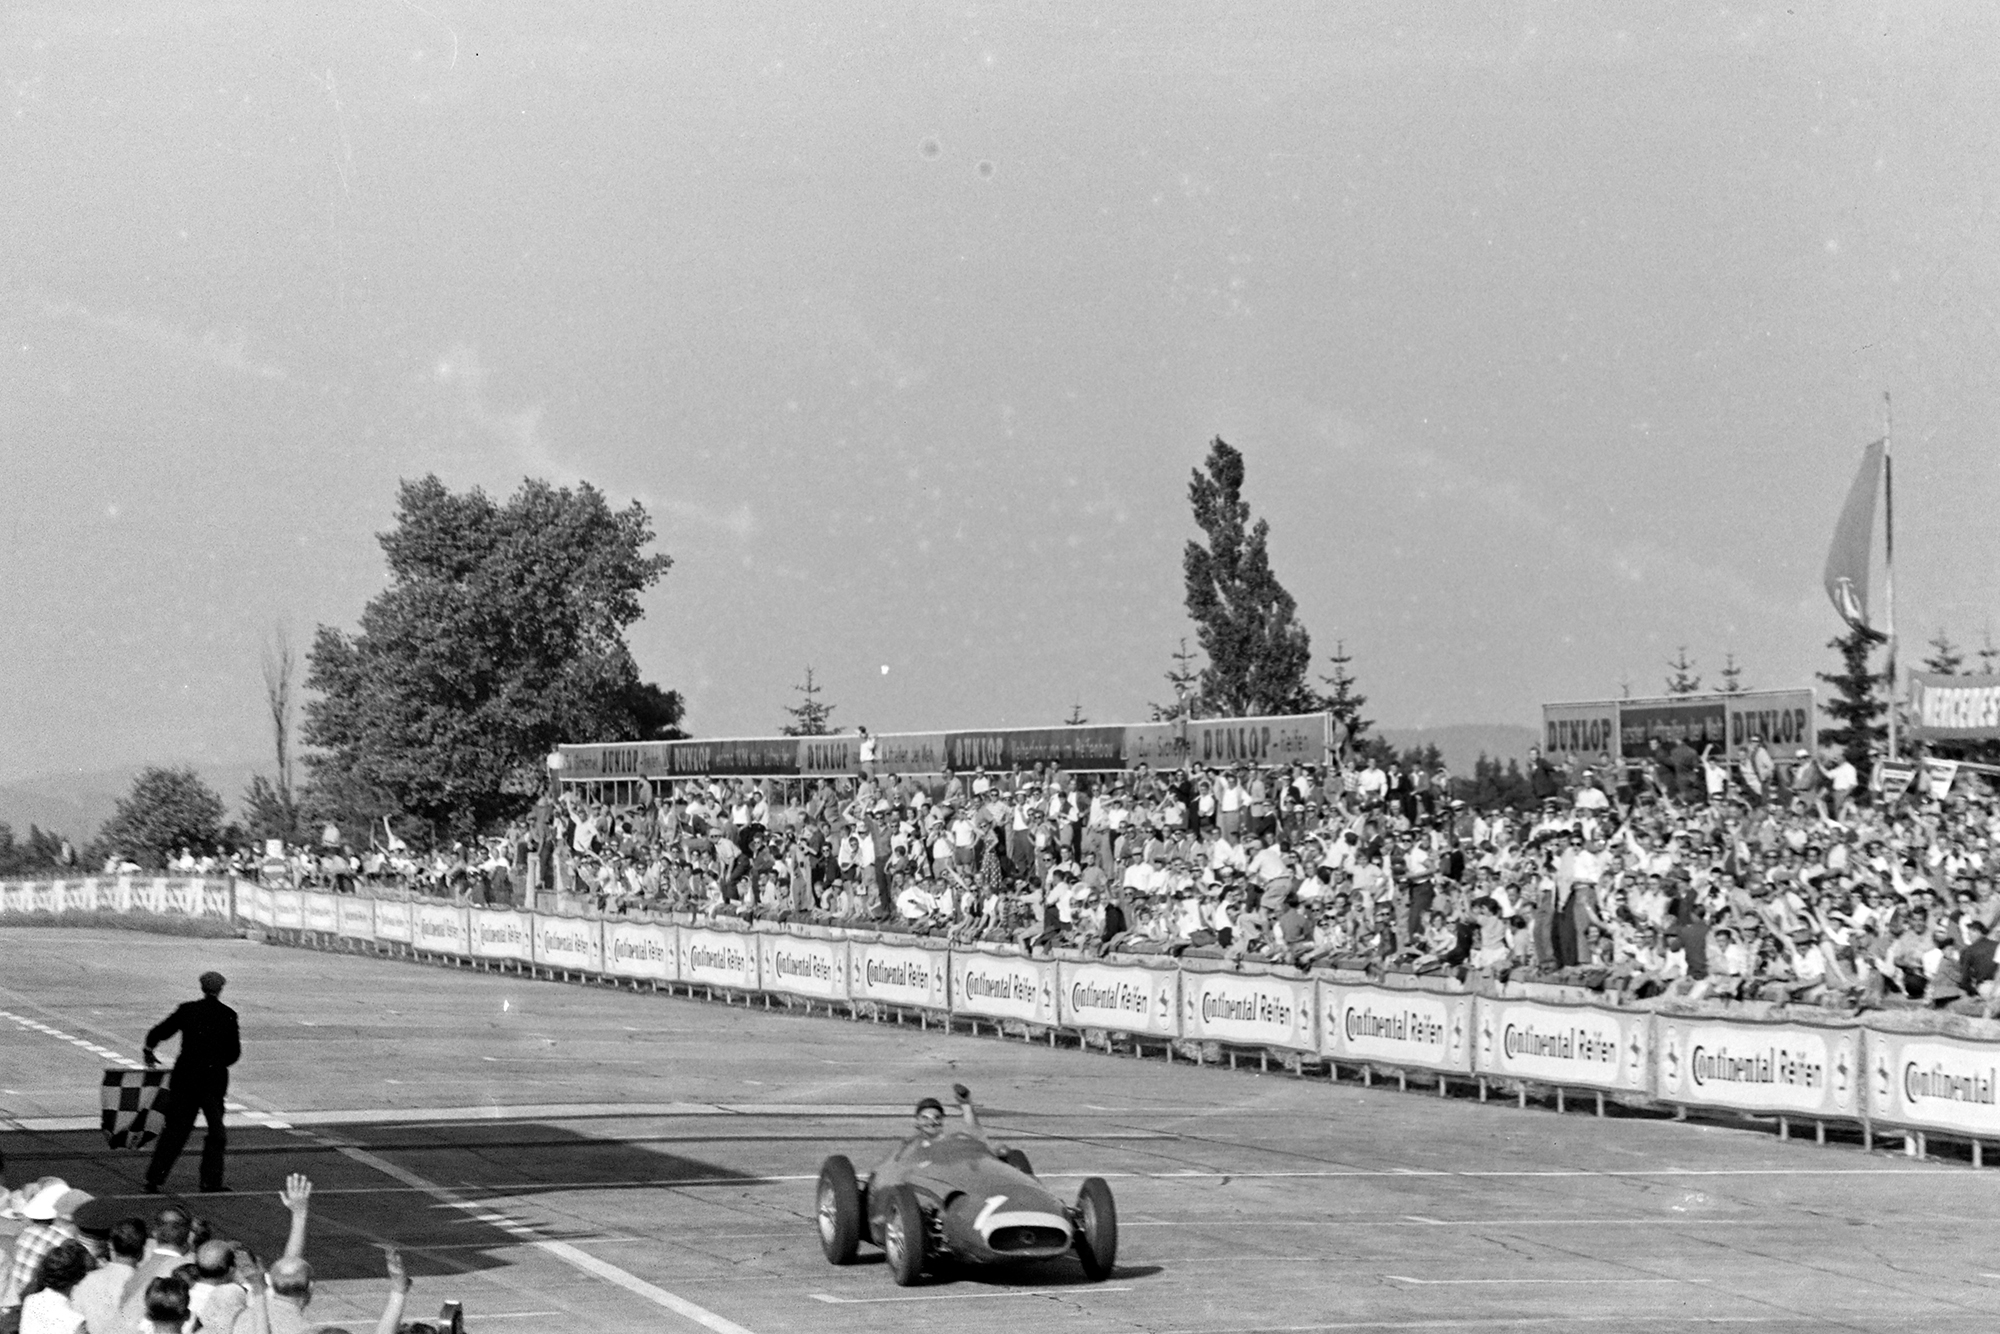 Juan Manuel Fangio crosses the finishing line and passes the chequered flag in his Maserati 250F